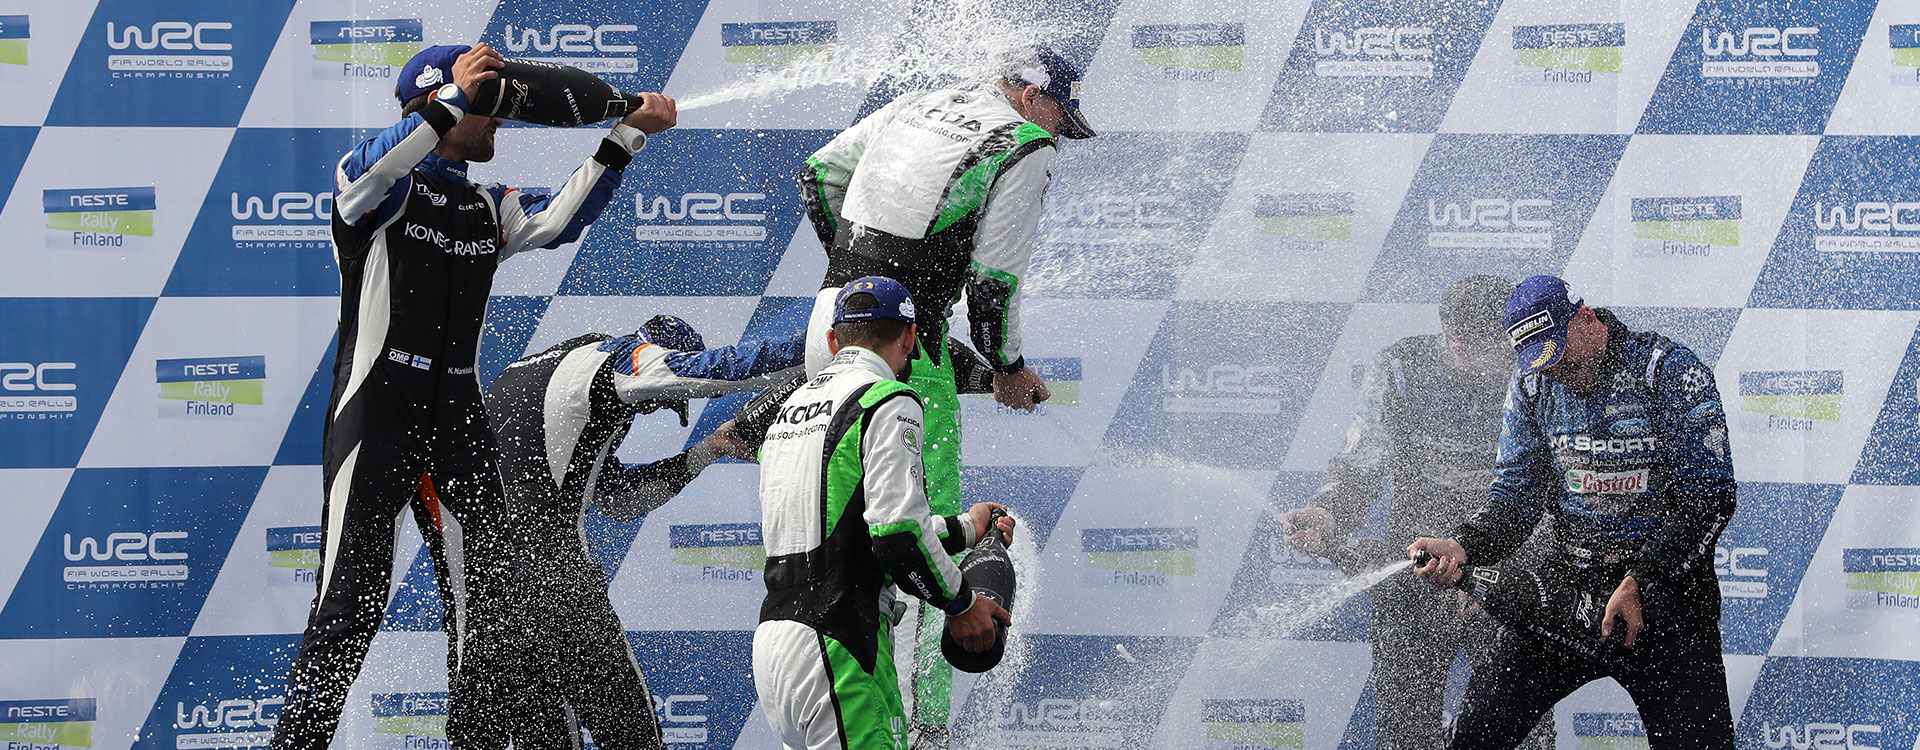 Victory in Finland: Lappi / Ferm extend winning sequence for ŠKODA